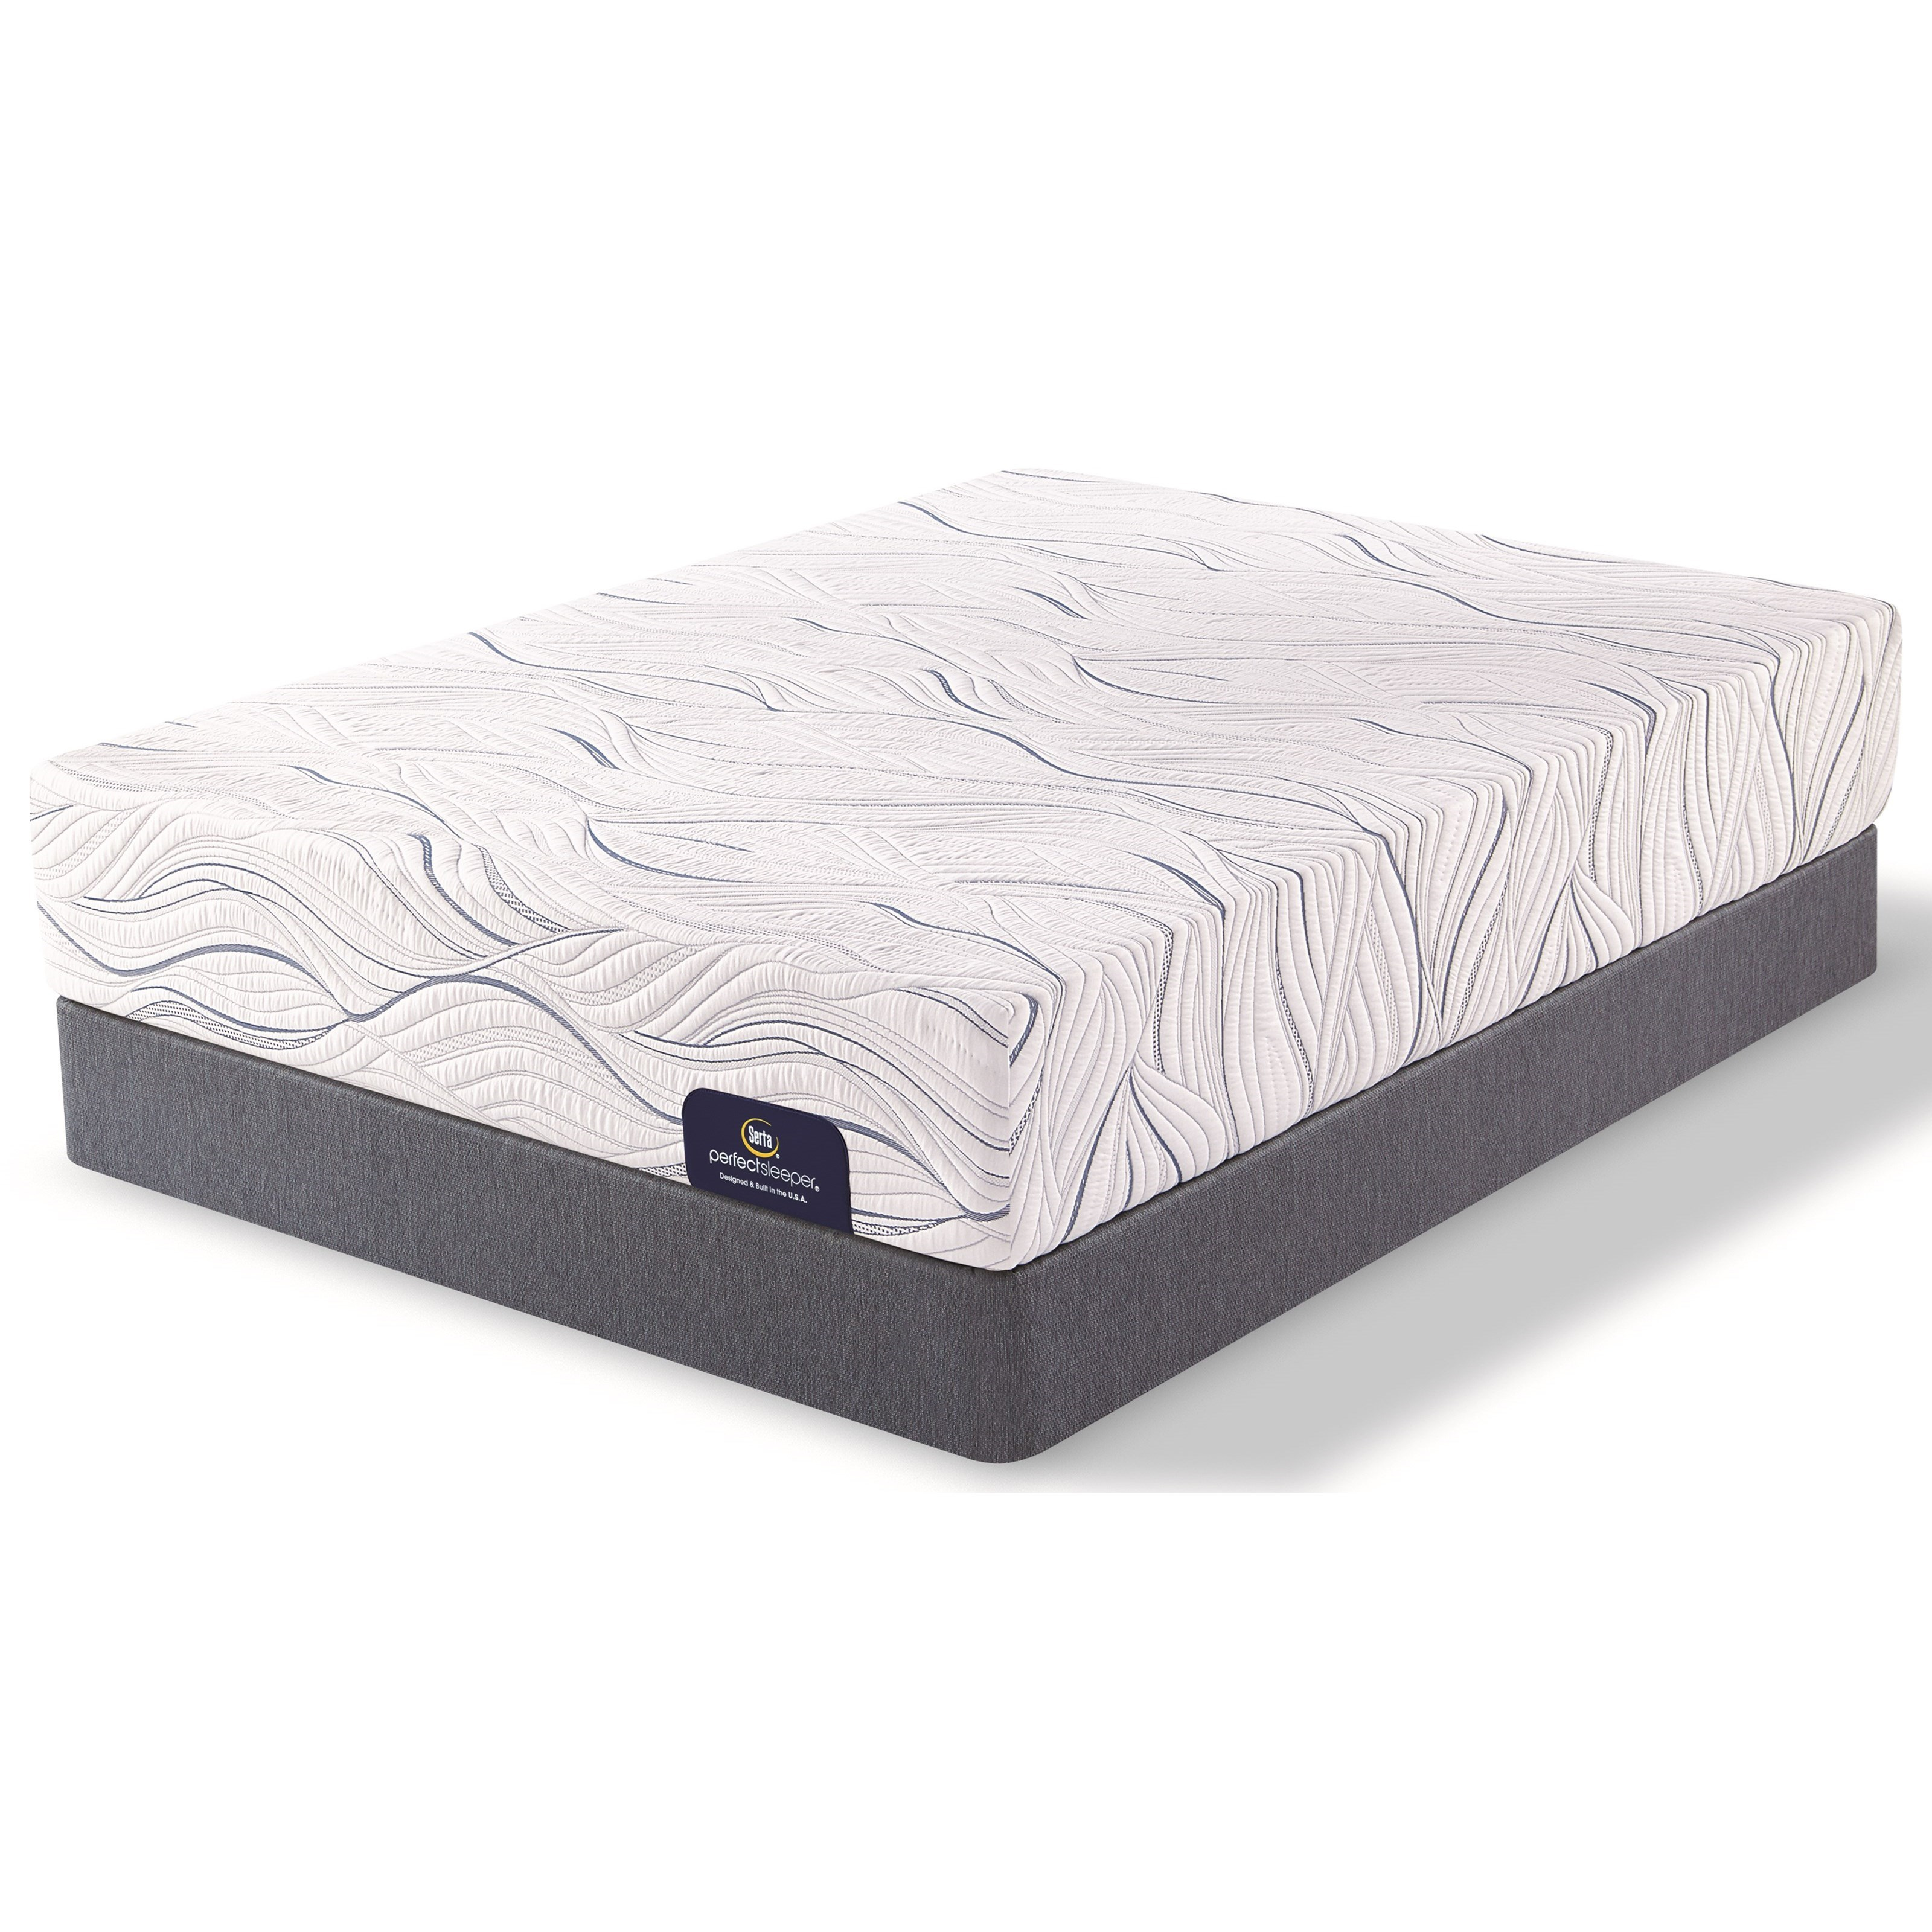 gentle hub blue serta matt the eps firm silo mattress ico kansas icomfort